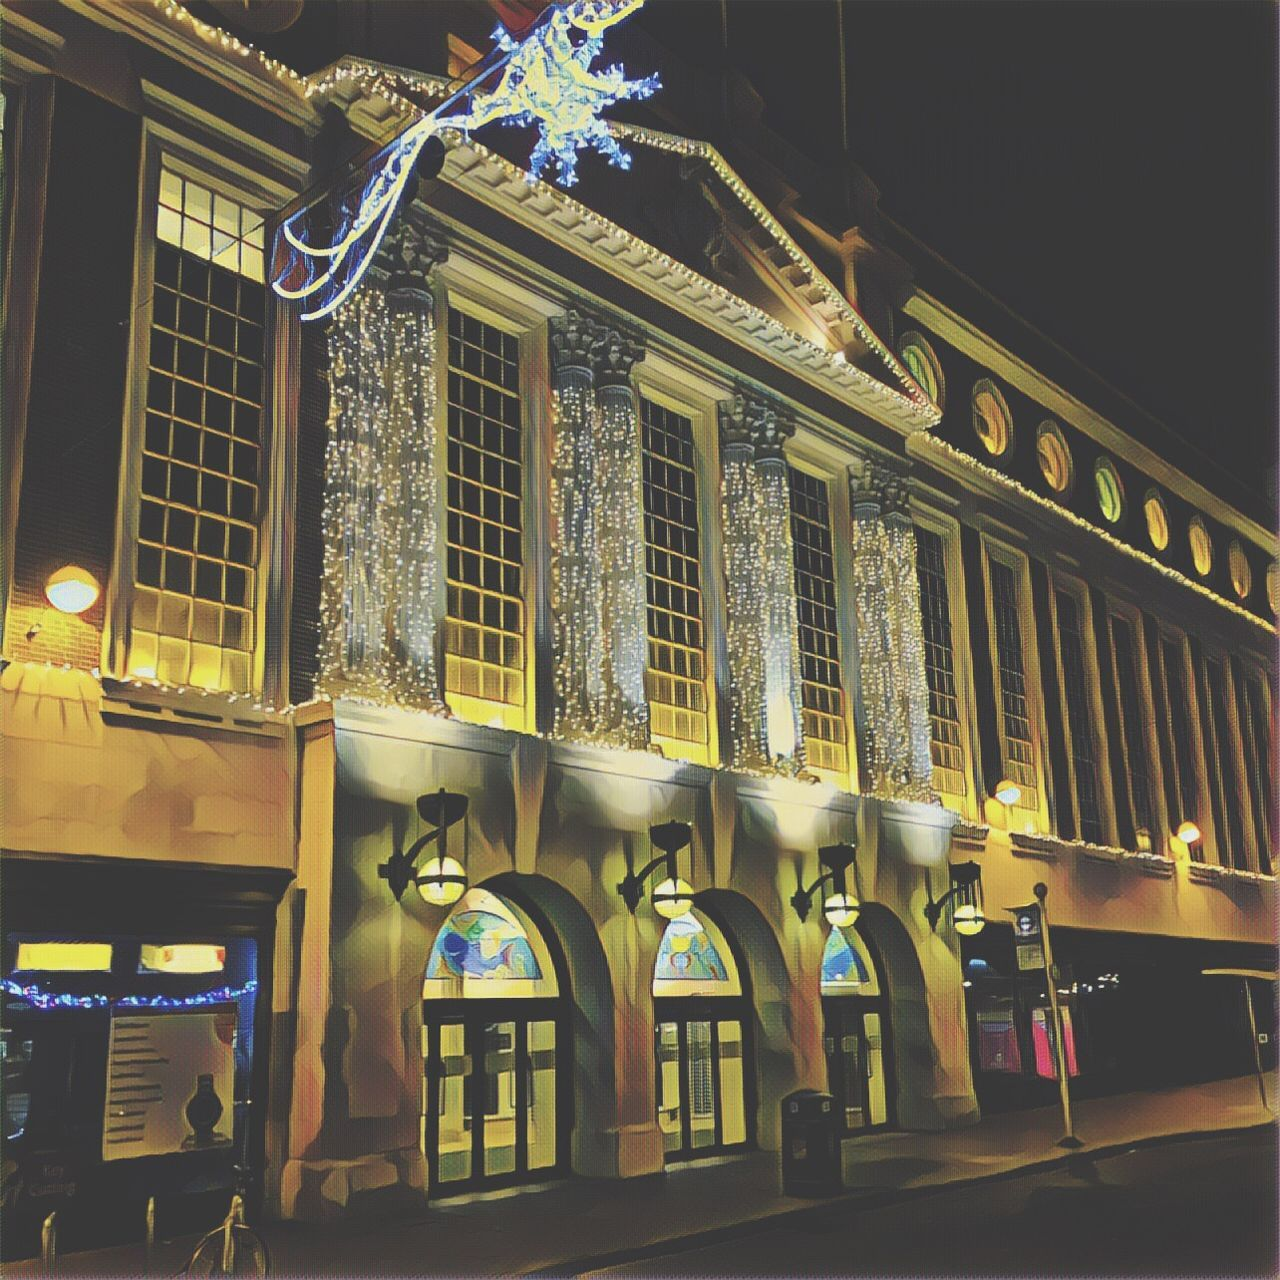 Architecture Built Structure City Kingston Upon Thames Prisma Art Night Lights MerryChristmas